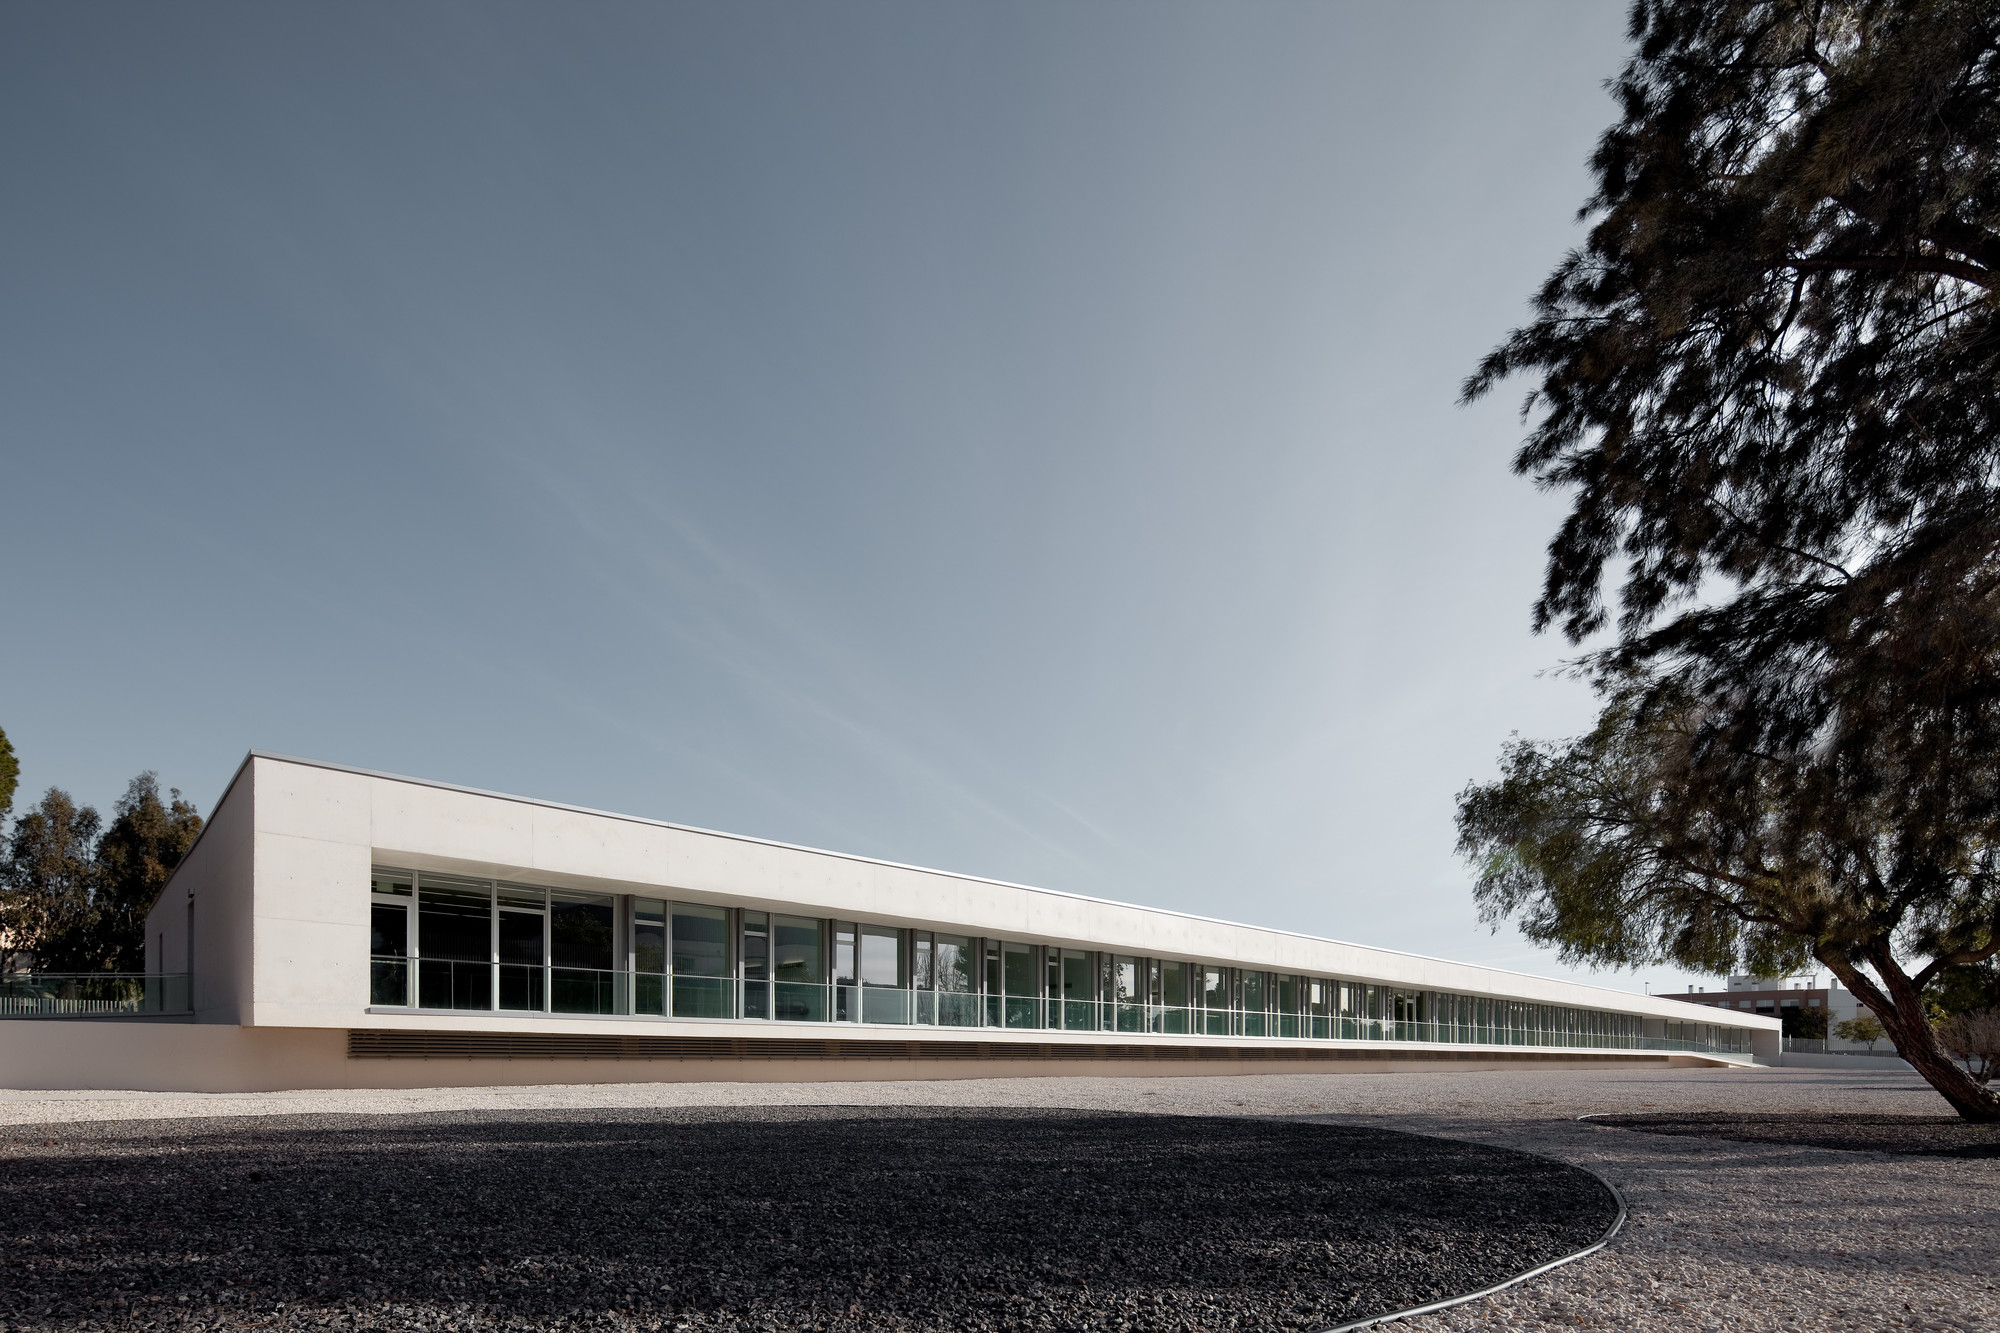 Center for Psychosocial Rehabilitation / Otxotorena Arquitectos, © Pedro Pegenaute